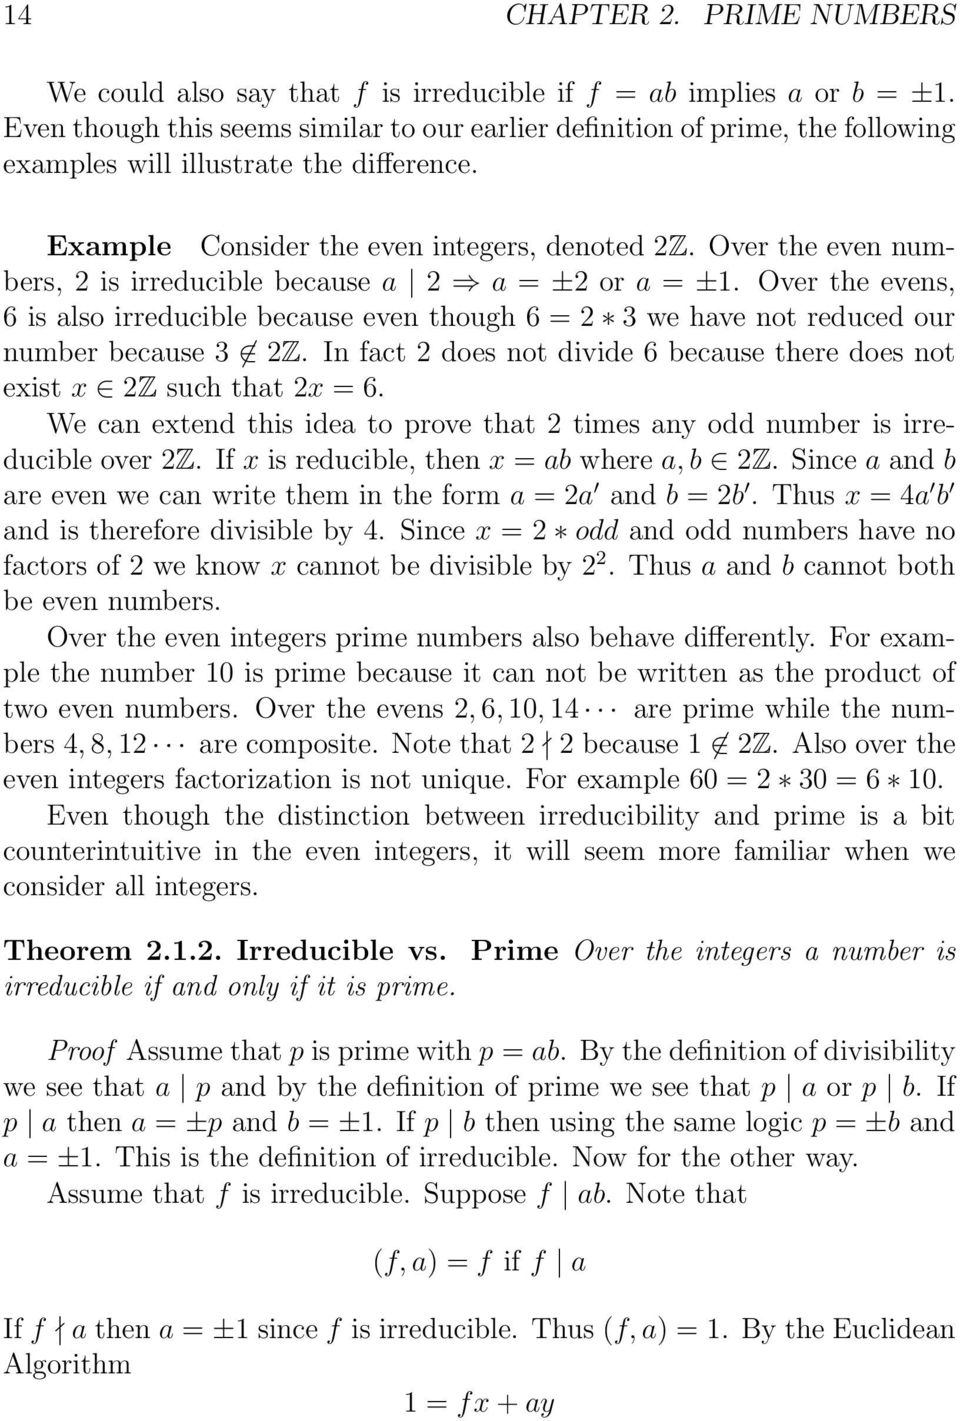 Over the even numbers, 2 is irreducible because a 2 a = ±2 or a = ±1. Over the evens, 6 is also irreducible because even though 6 = 2 3 we have not reduced our number because 3 2Z.